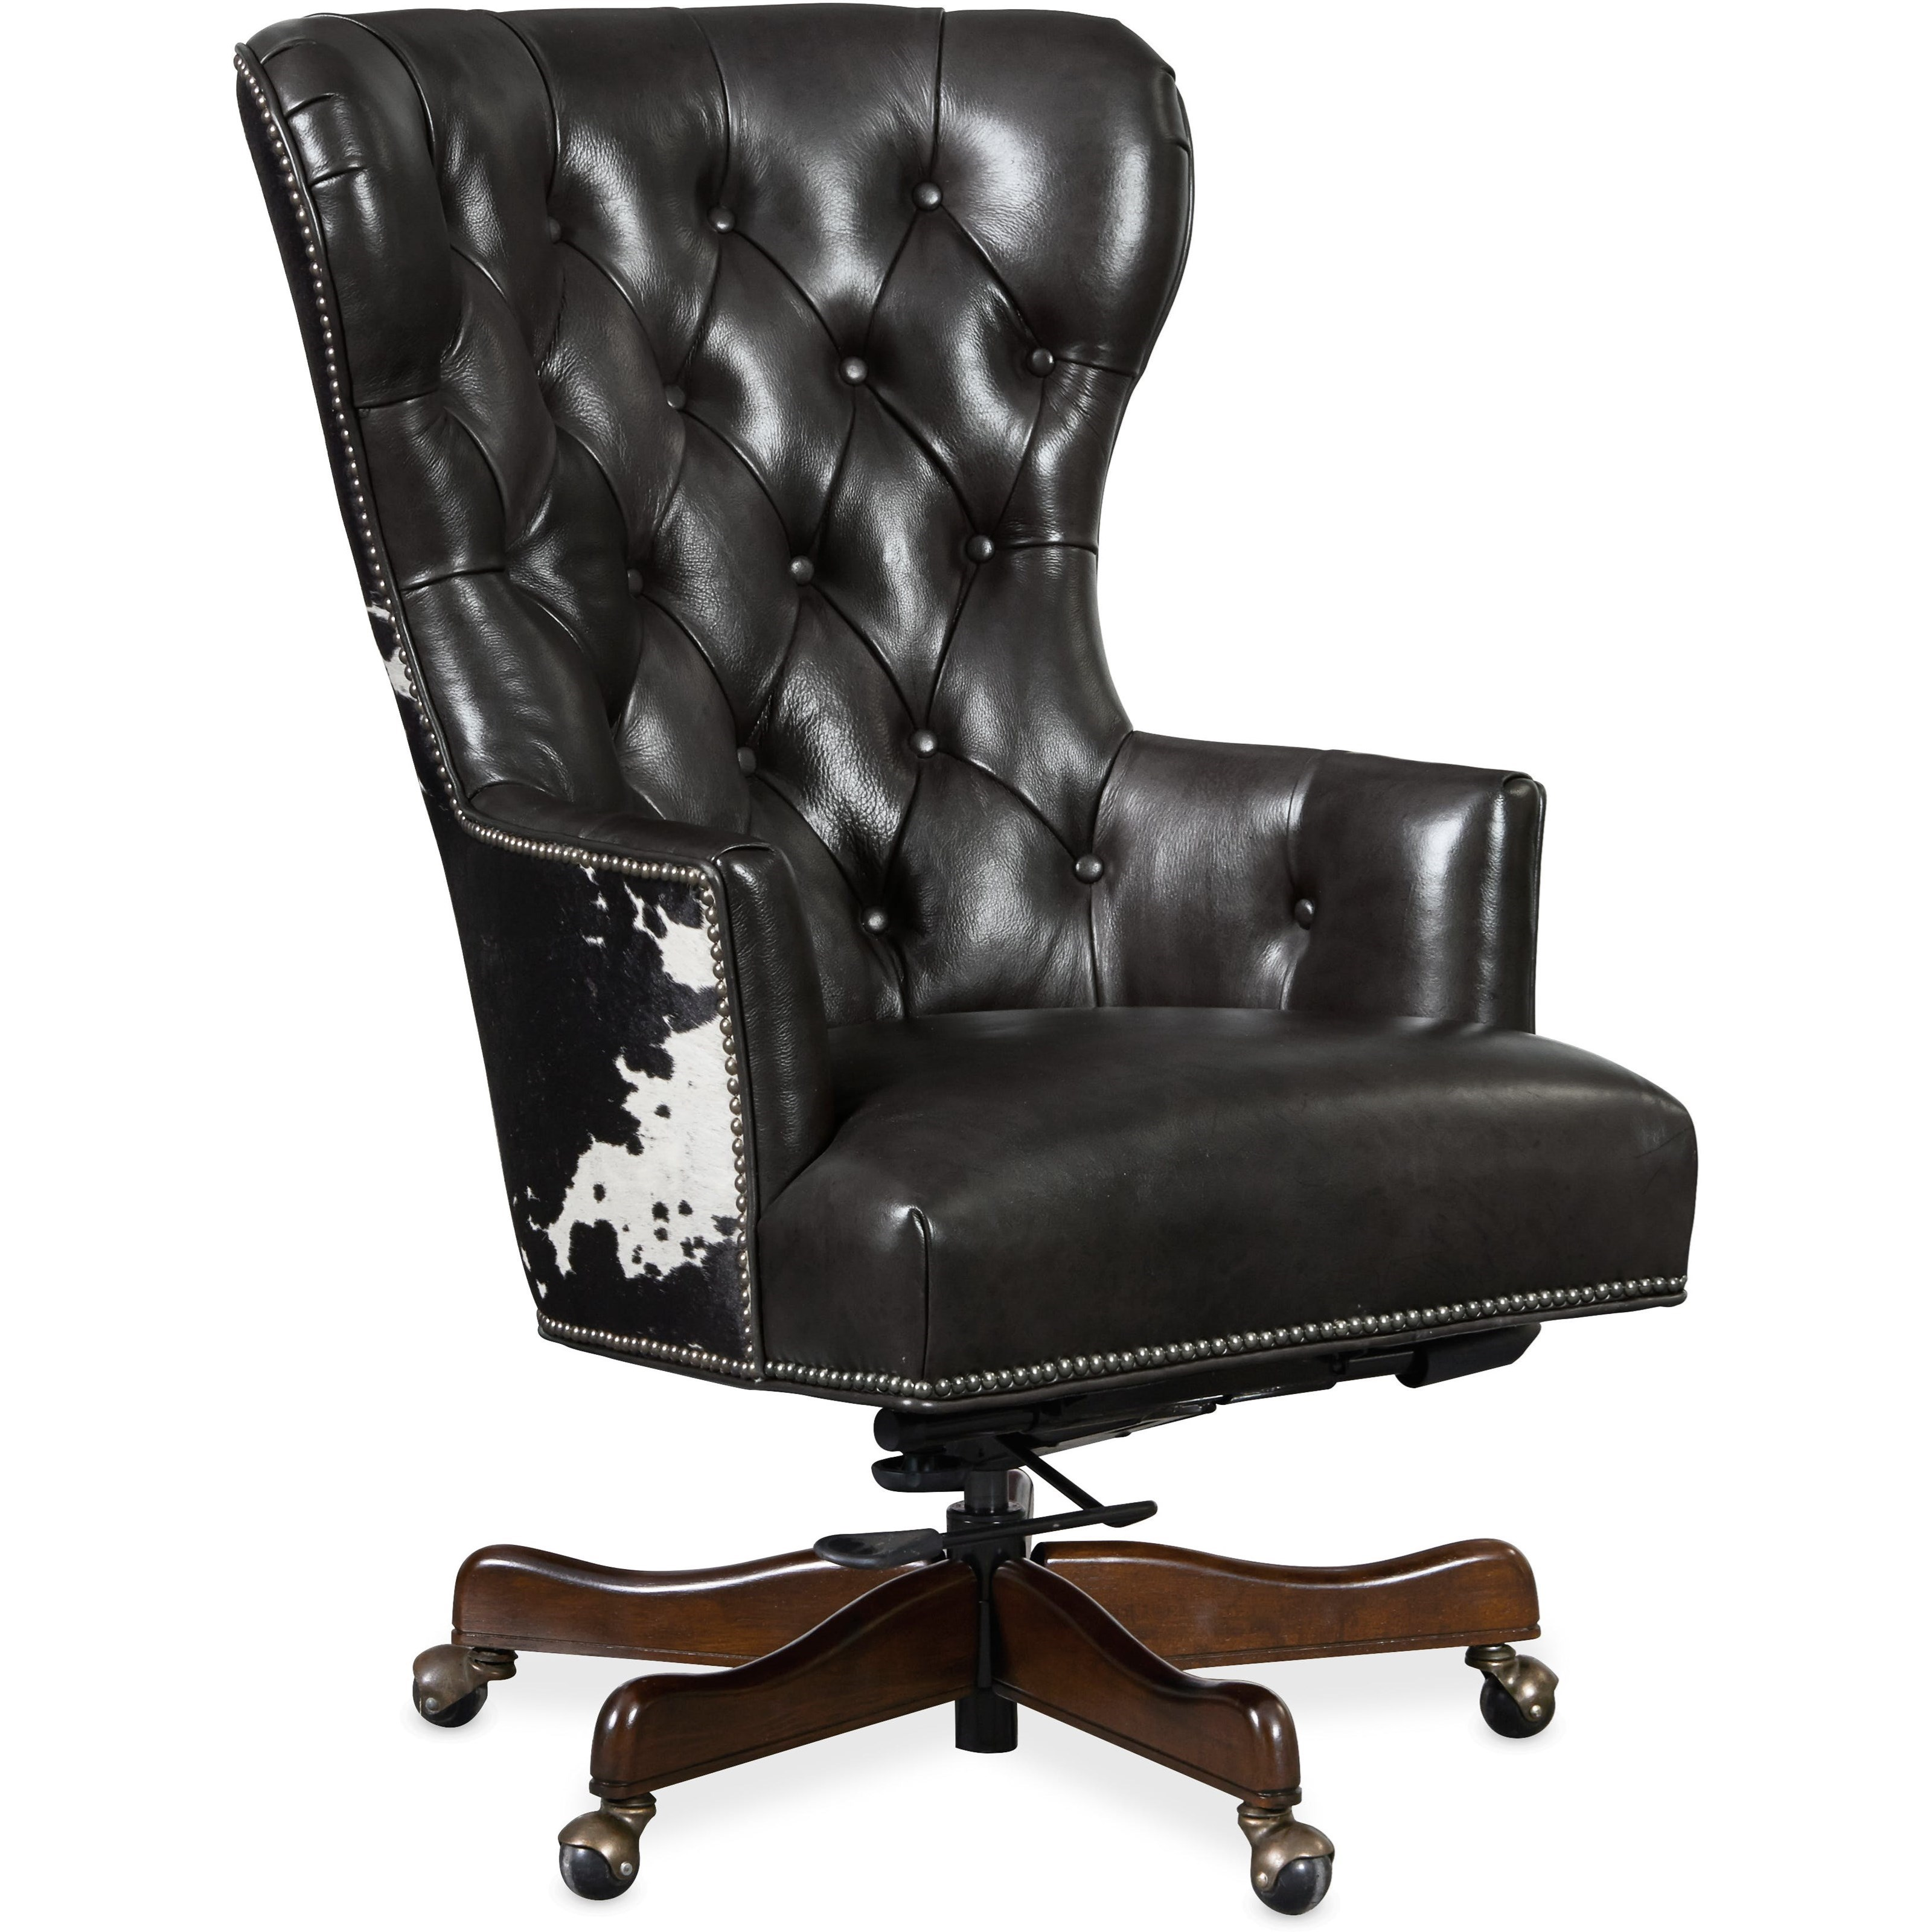 Hooker Furniture Executive Seating Ec448 097 Traditional Home Office Chair With Tufting Dunk Bright Furniture Executive Desk Chairs